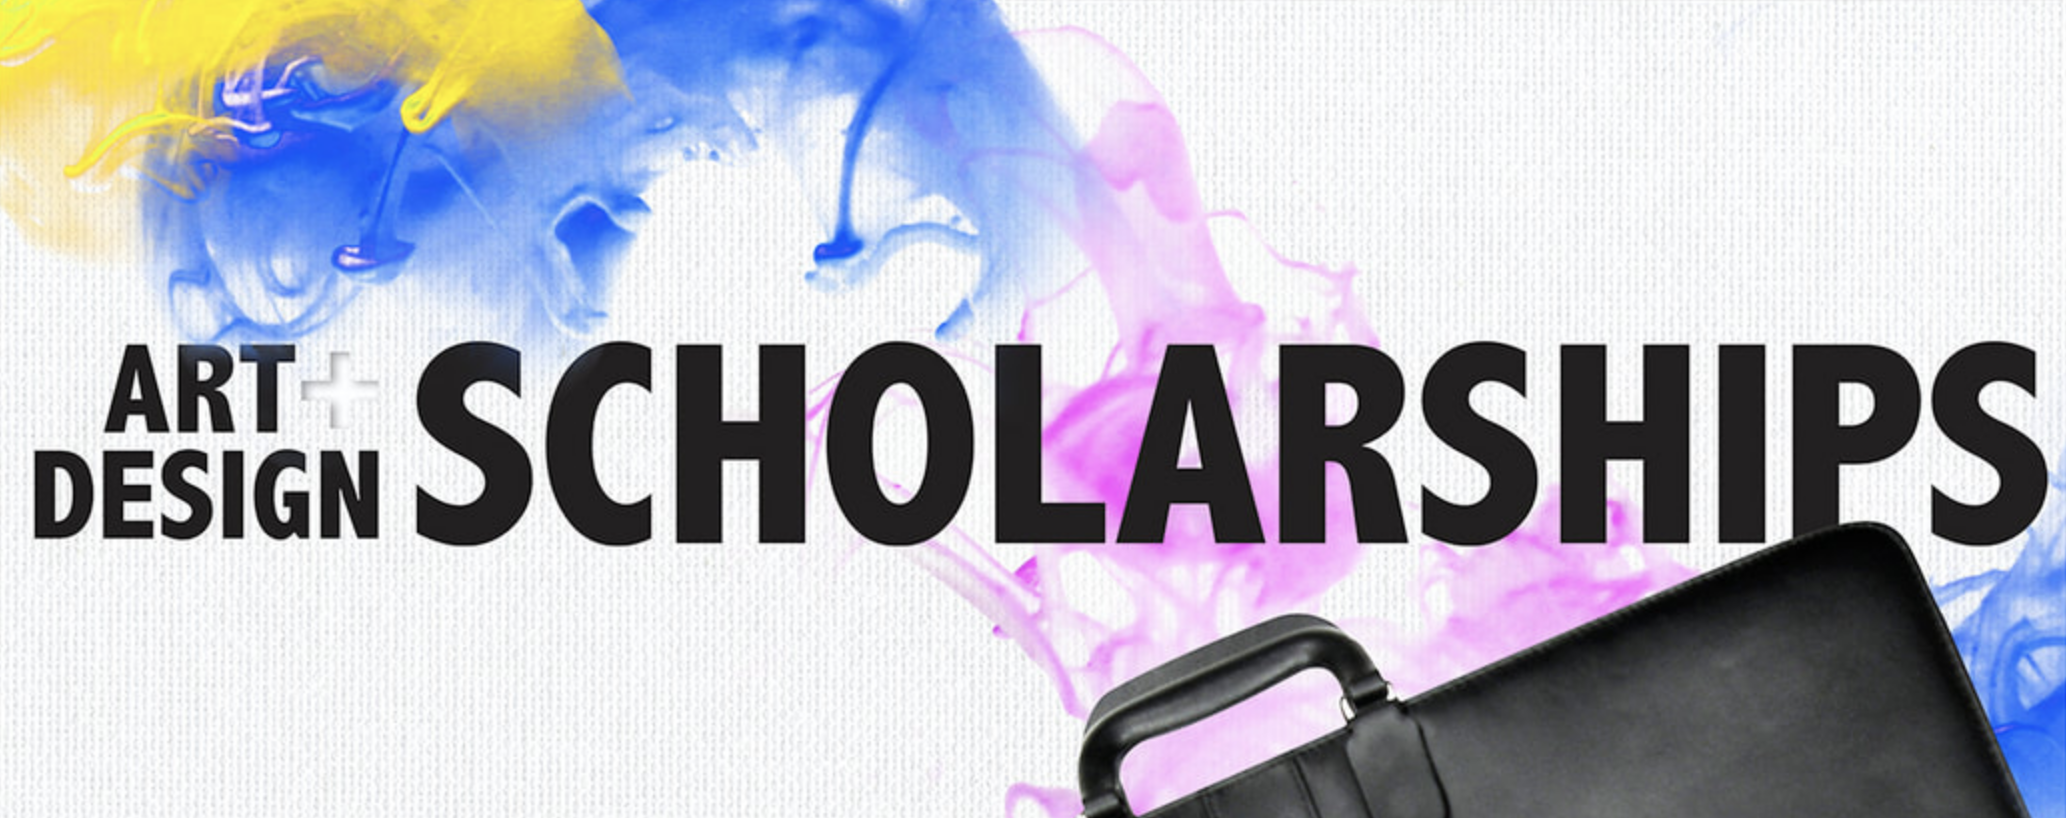 A banner displaying a graphic for art and design scholarships.